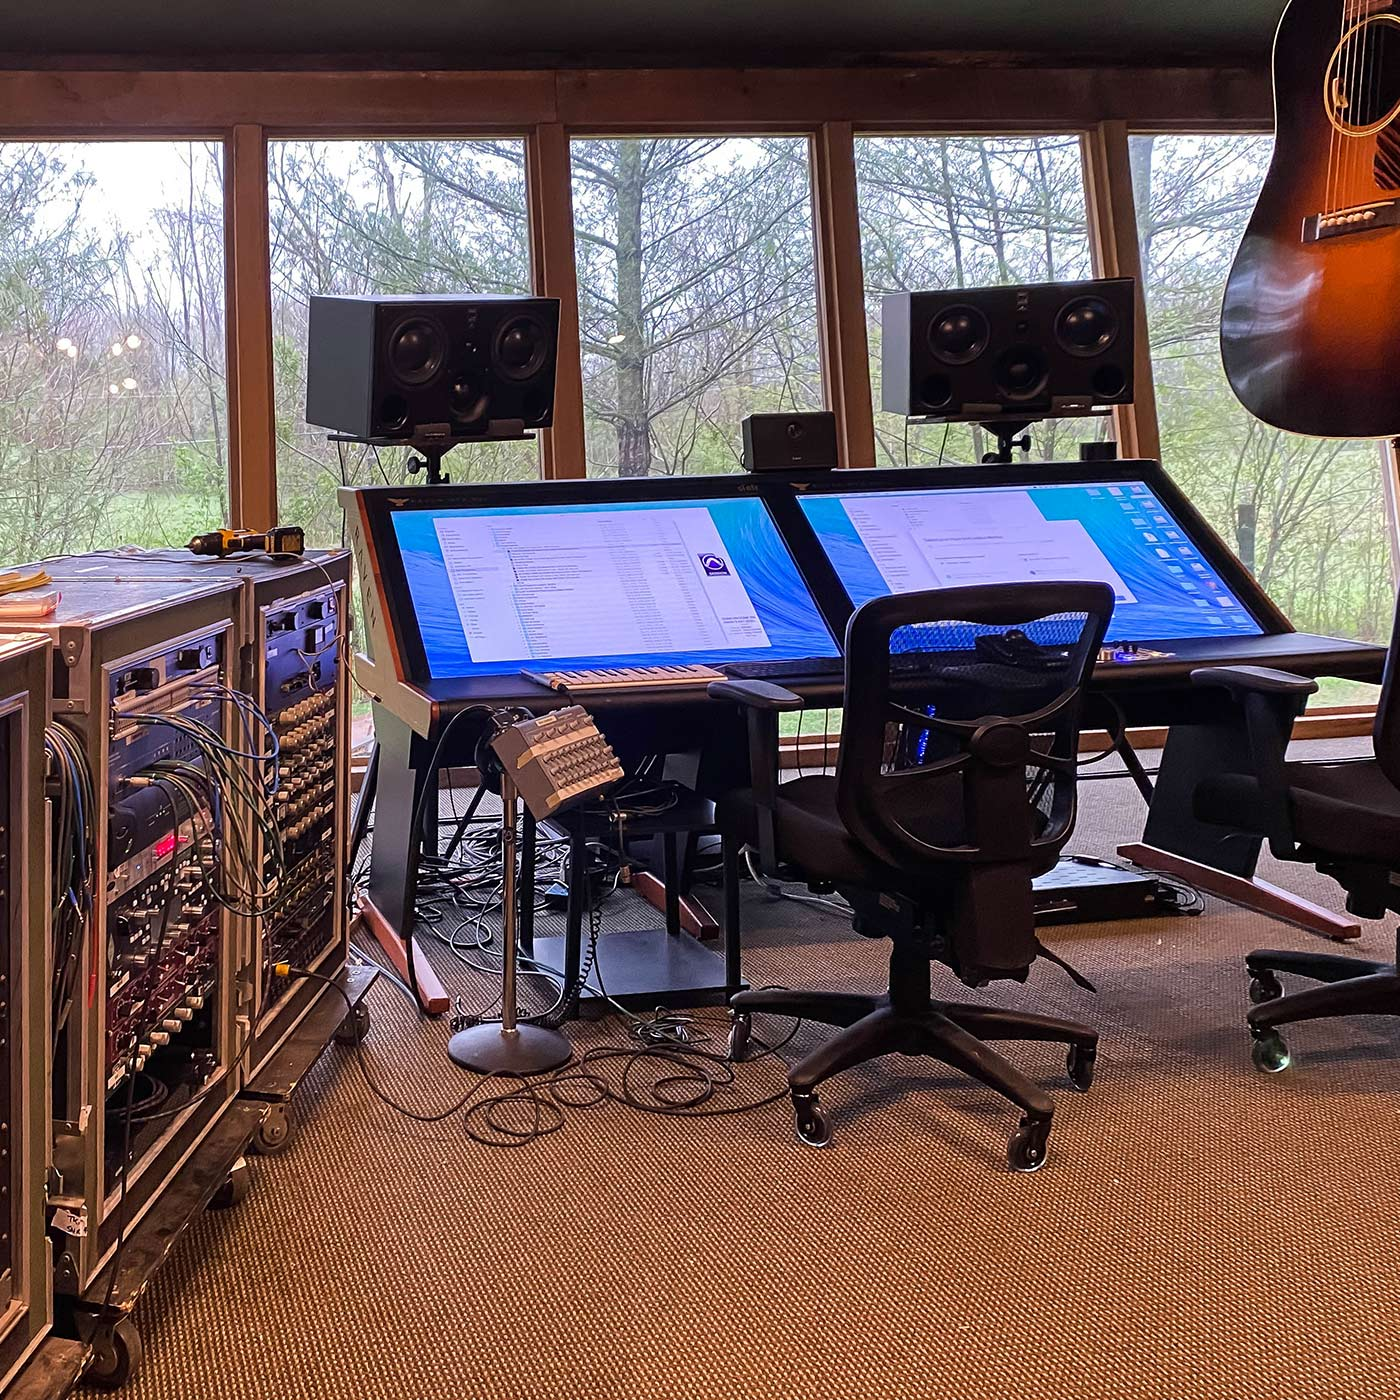 Mark Needham's private studio, Red Oak Studios